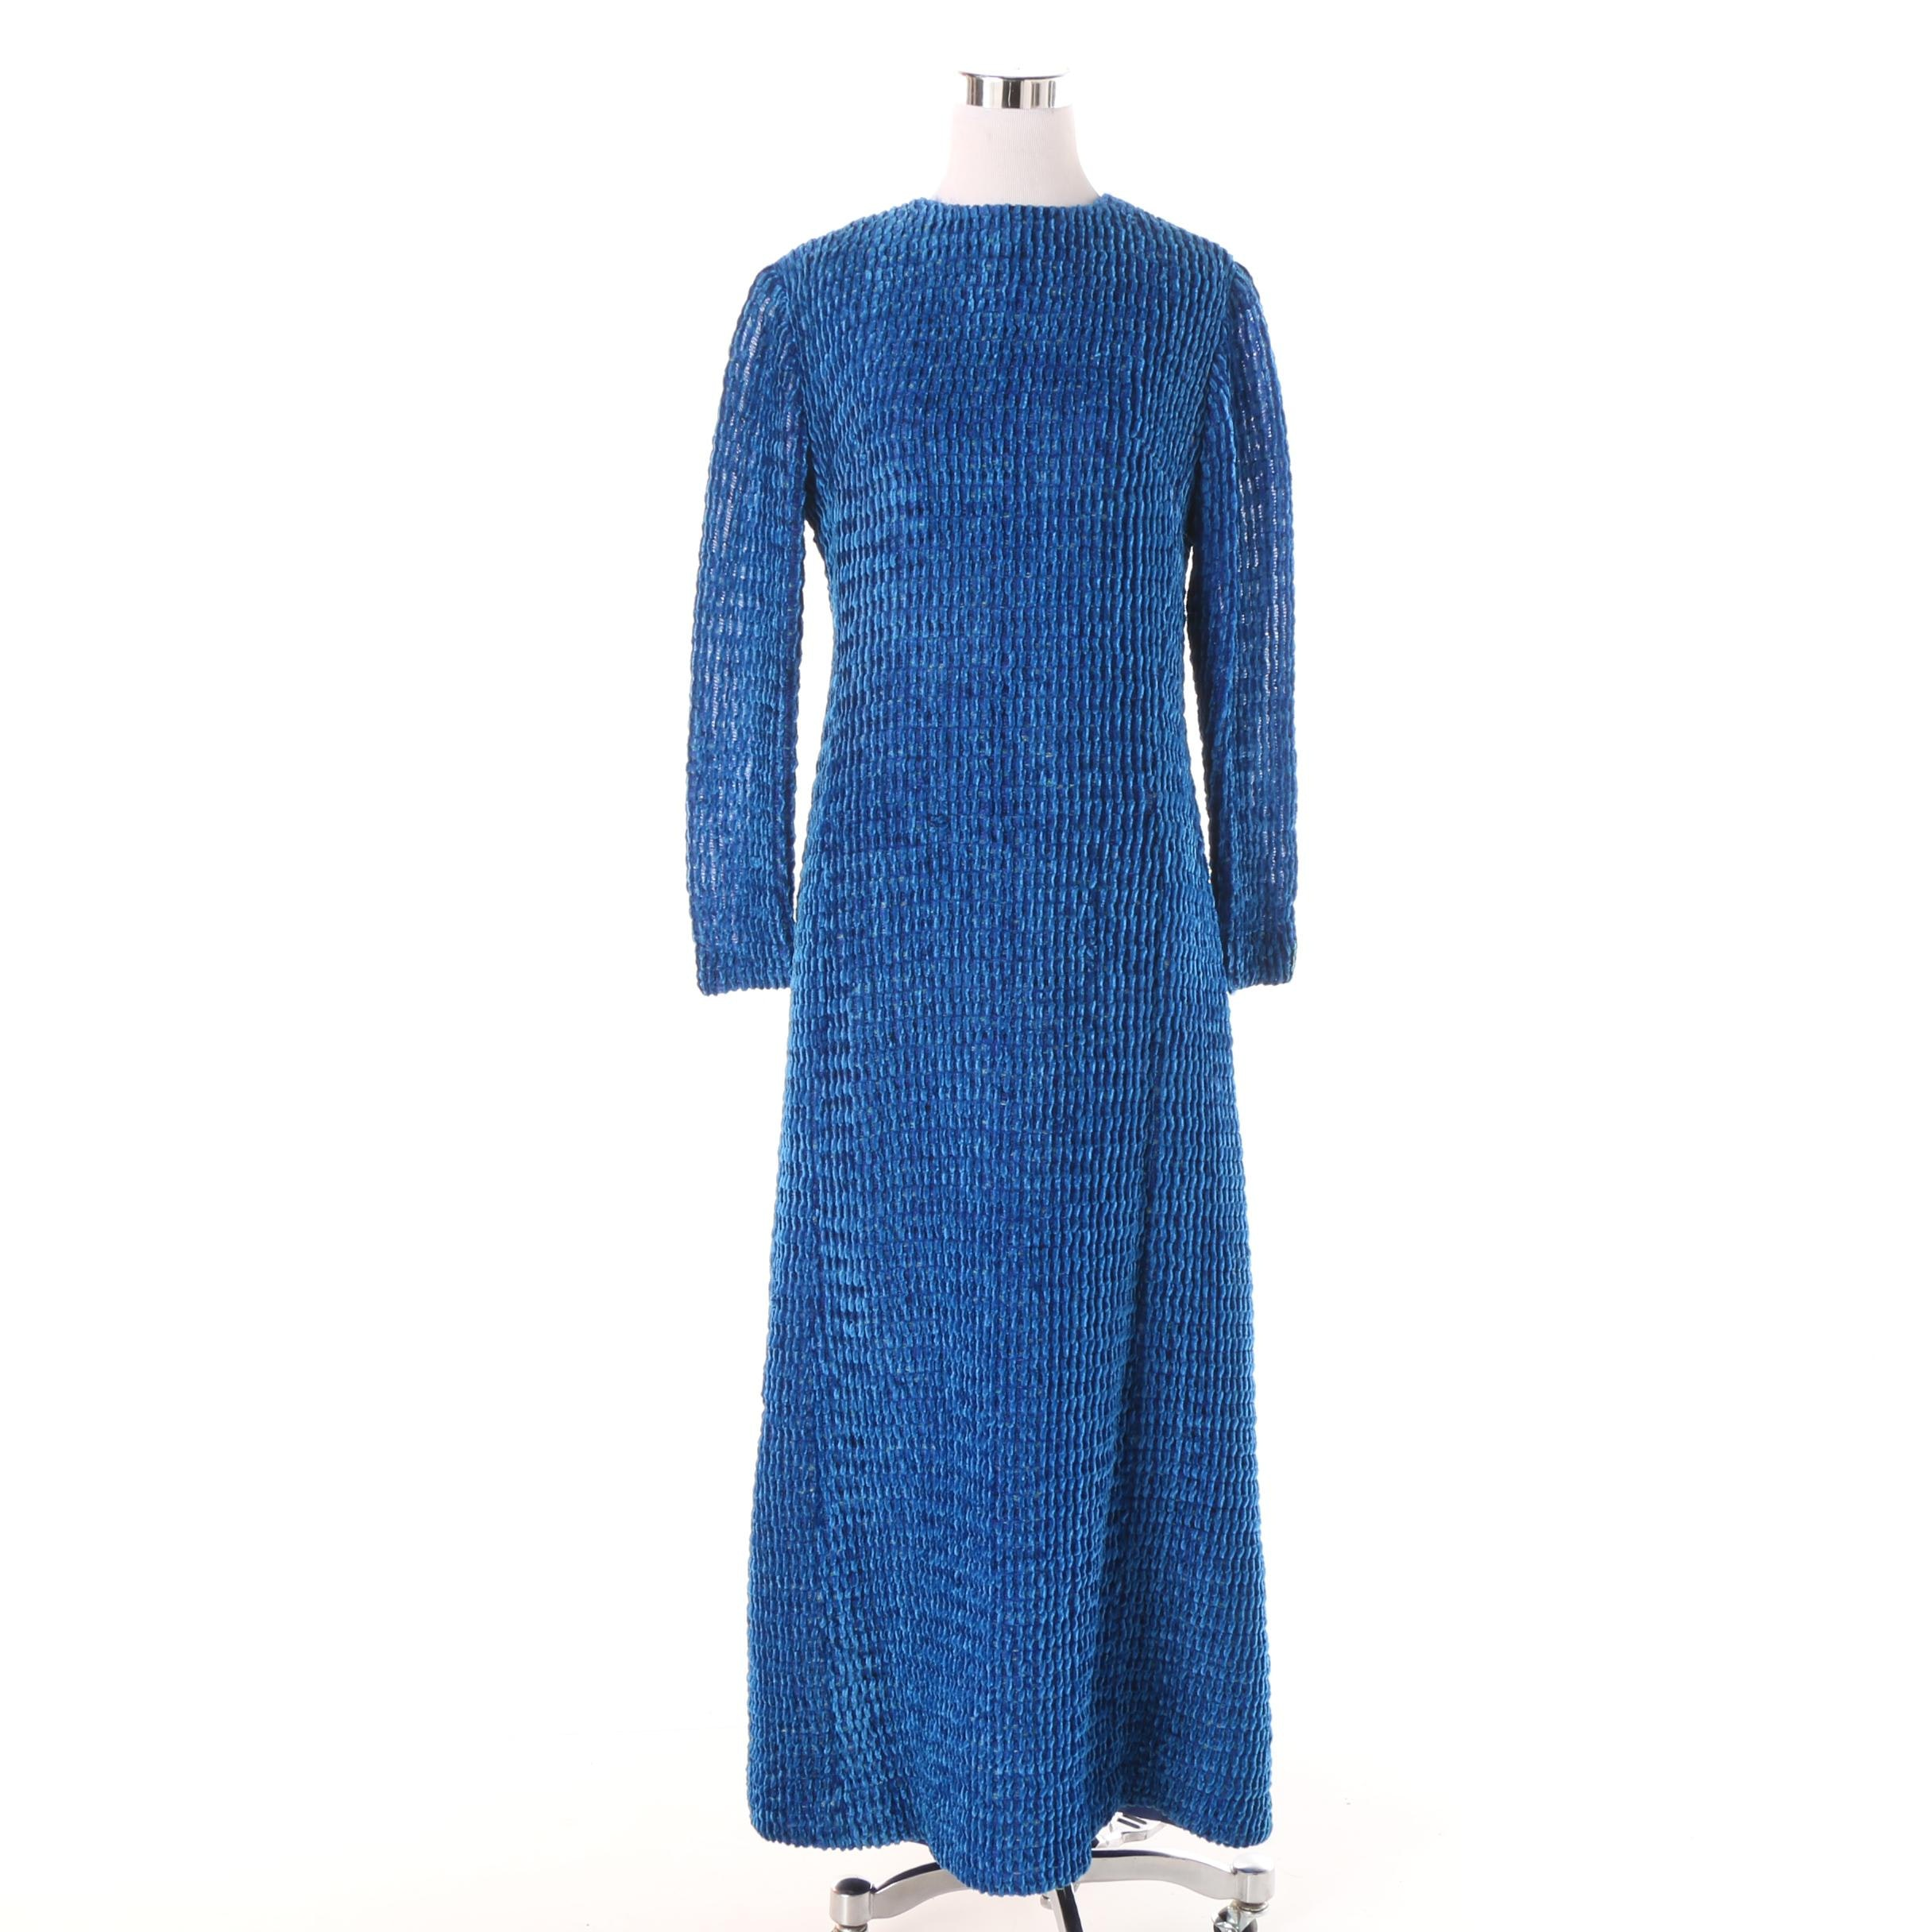 Circa 1970s Vintage Blue Ribbed Chenille Evening Dress